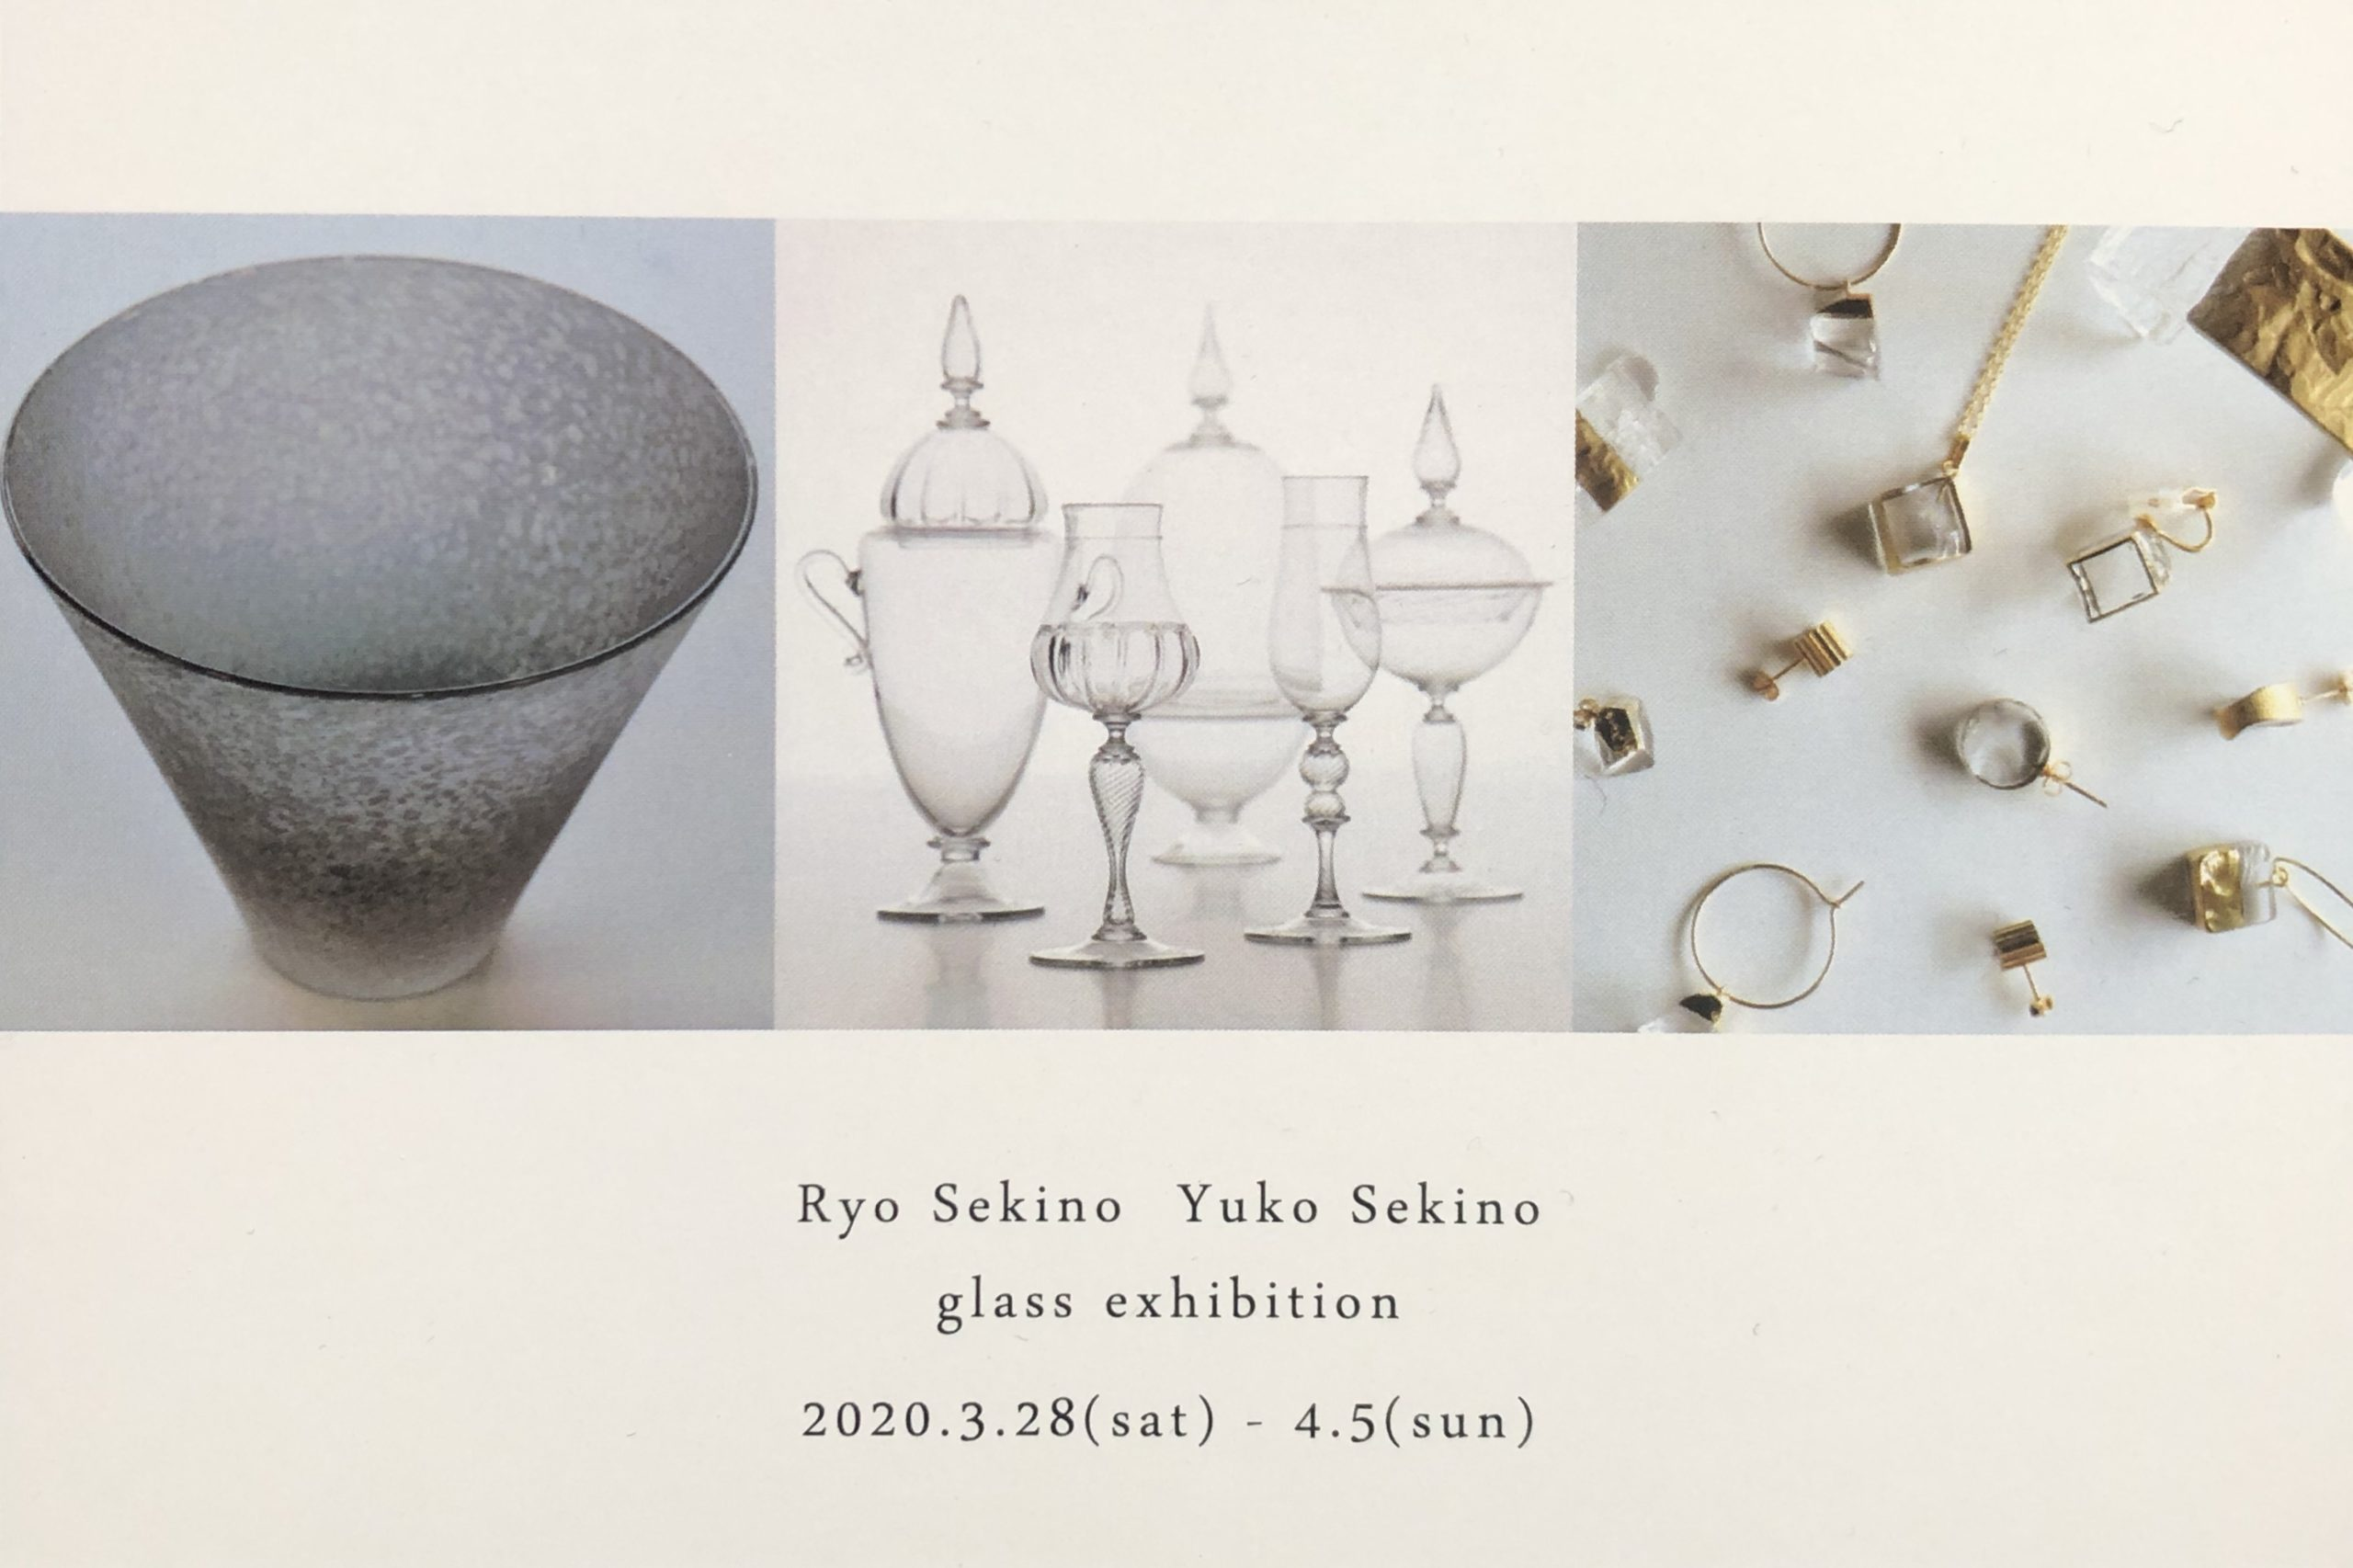 Ryo Sekino Yuko Sekino glass exhibition